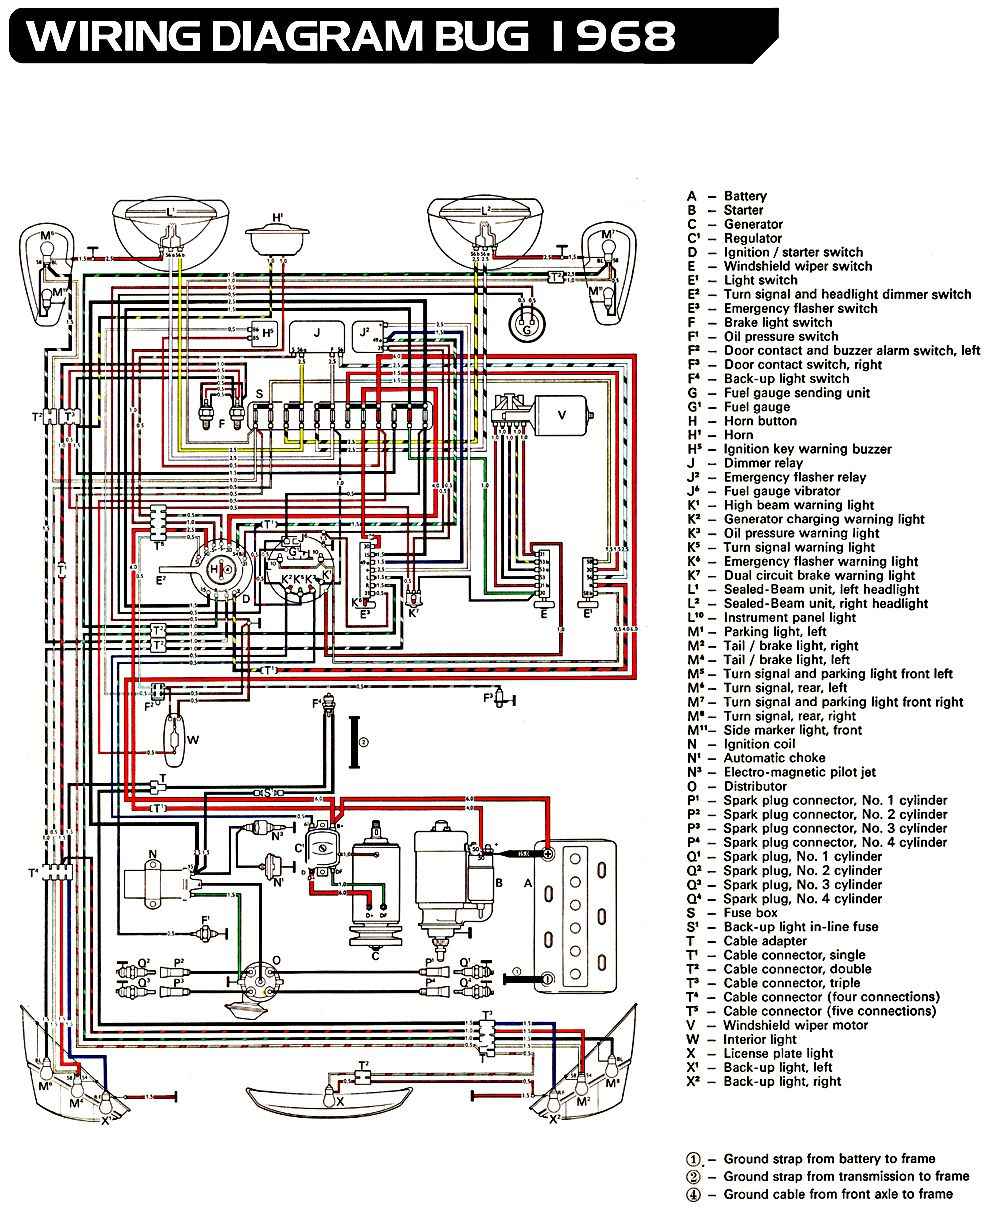 3a1908112d3826270ed5e3be362292bf vw bug ignition wiring diagram 73 vw wiring diagram free 1973 vw wiring diagram at pacquiaovsvargaslive.co